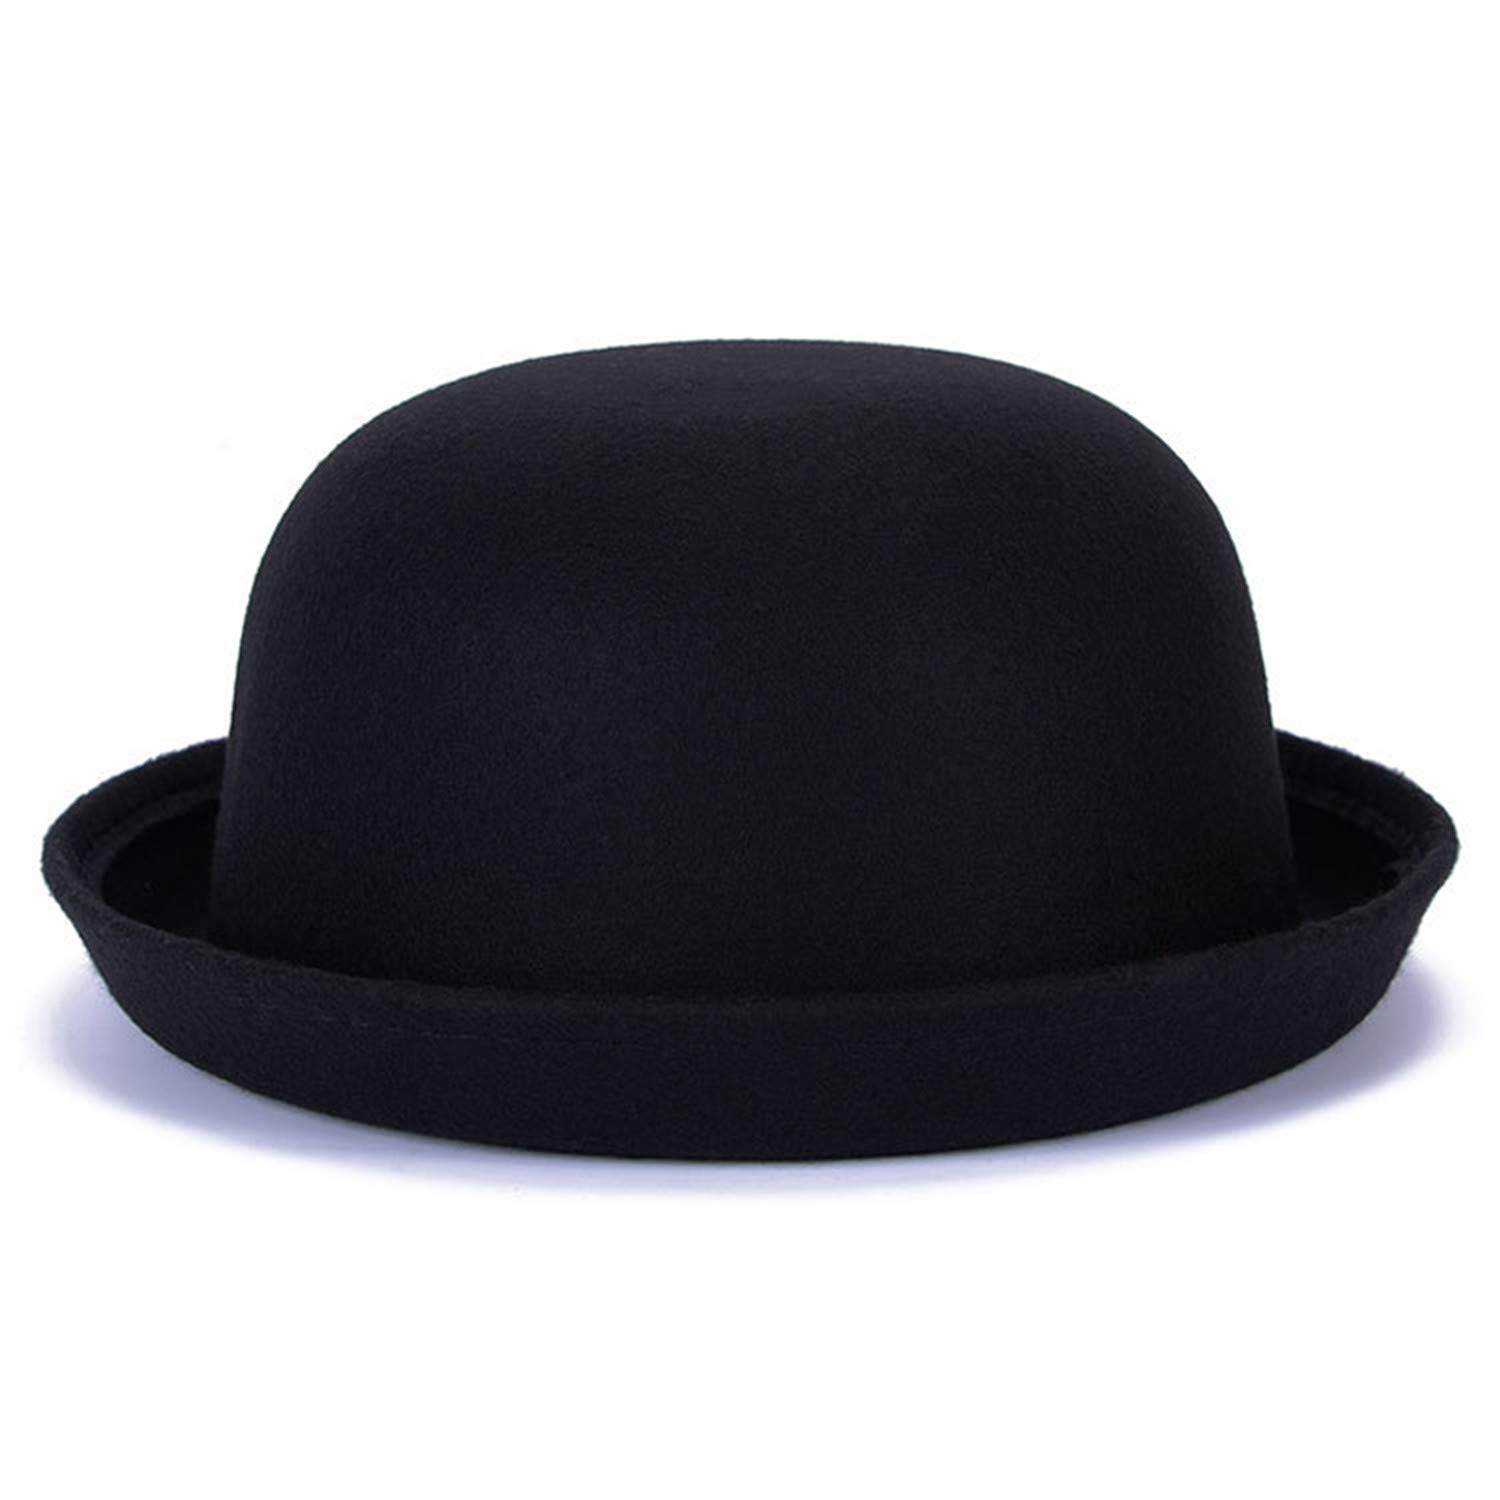 Zesoma Winter Women Woolen Felt Hat Fedoras Warm Soft Formal Hat Casual Bowler Hat